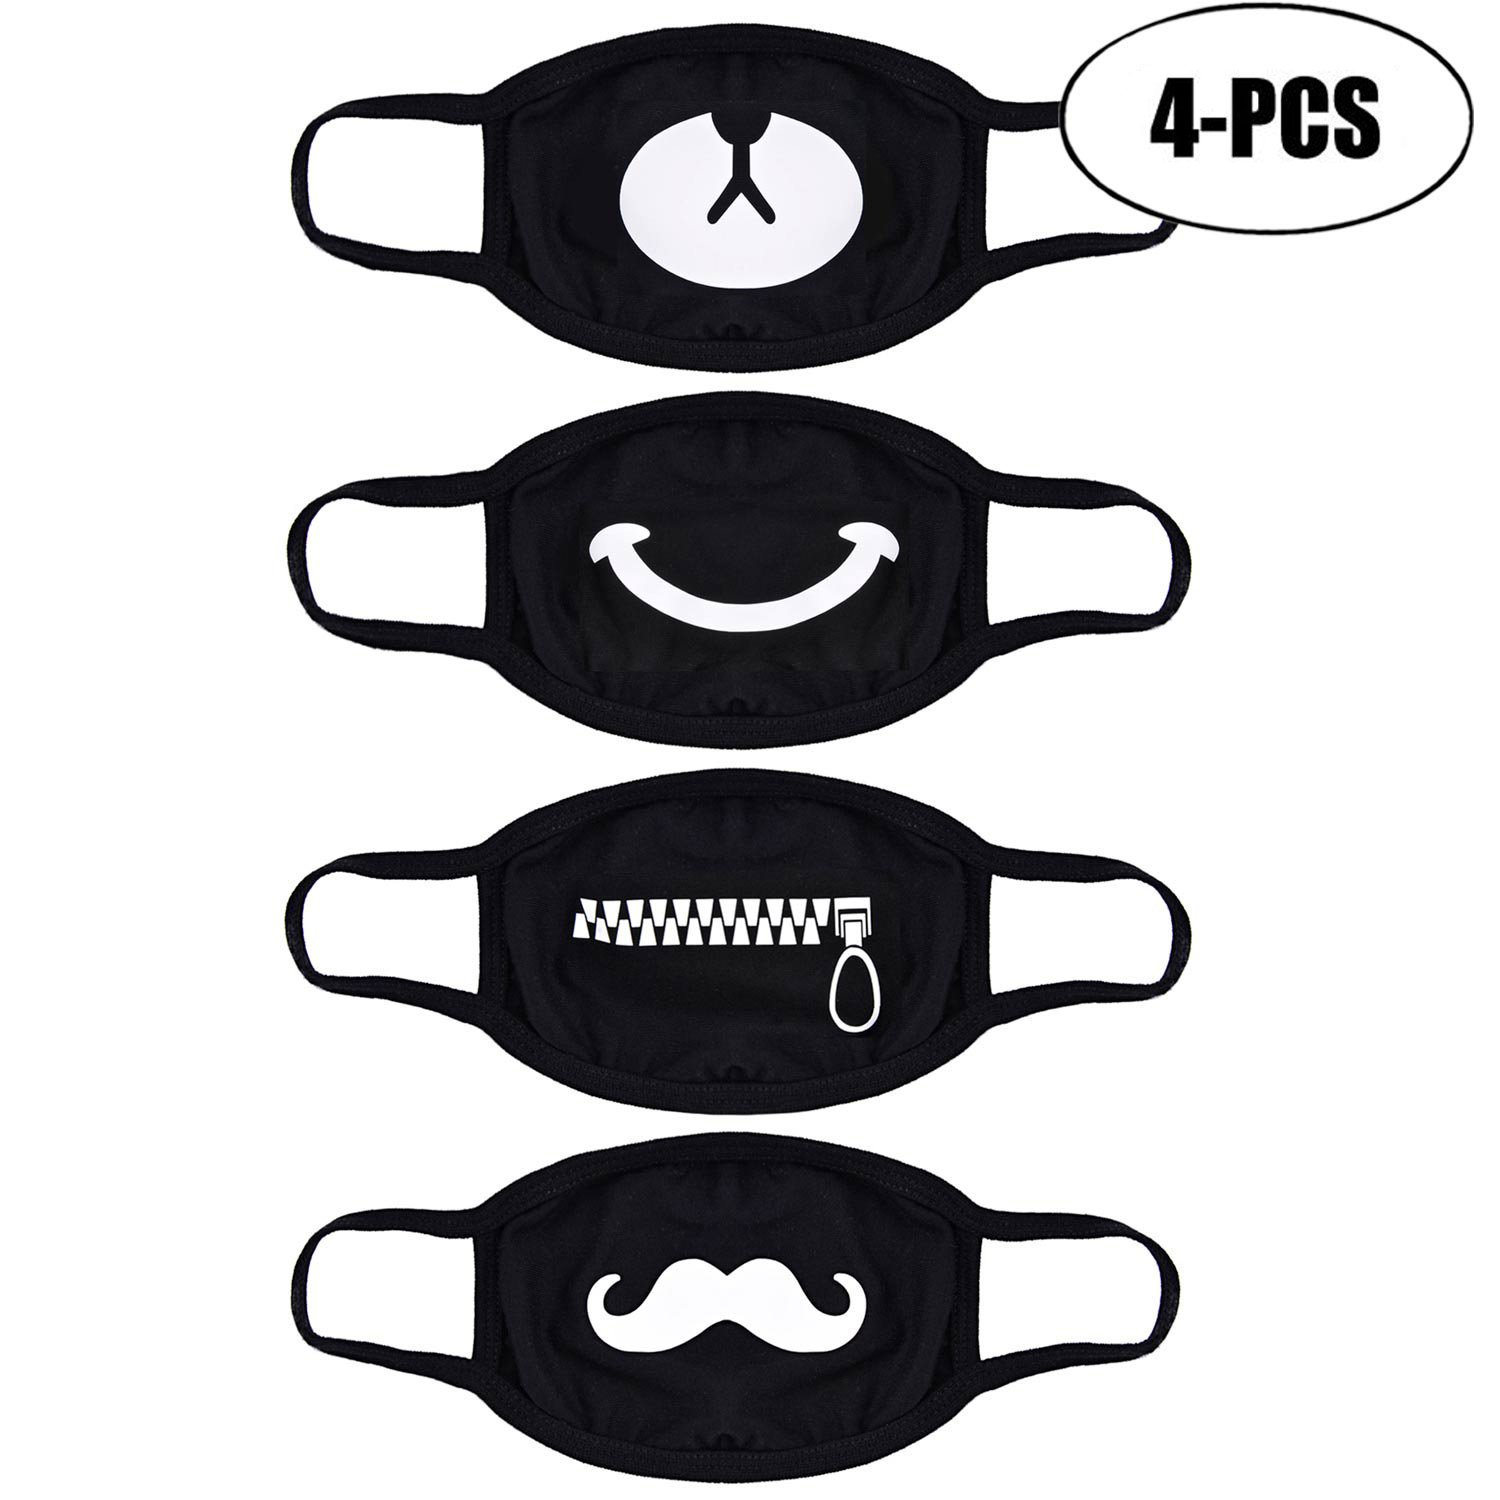 Mouth Mask, Fascigirl Unisex Blend Kawaii Muffle Cotton Kpop Mask Protective Earloop Anti-Dust Anime Mouth Cover Flu Germs Filters Mask Cute kaomoji Face Emoticon Mask for Men and Women 32B1622107BEEM733